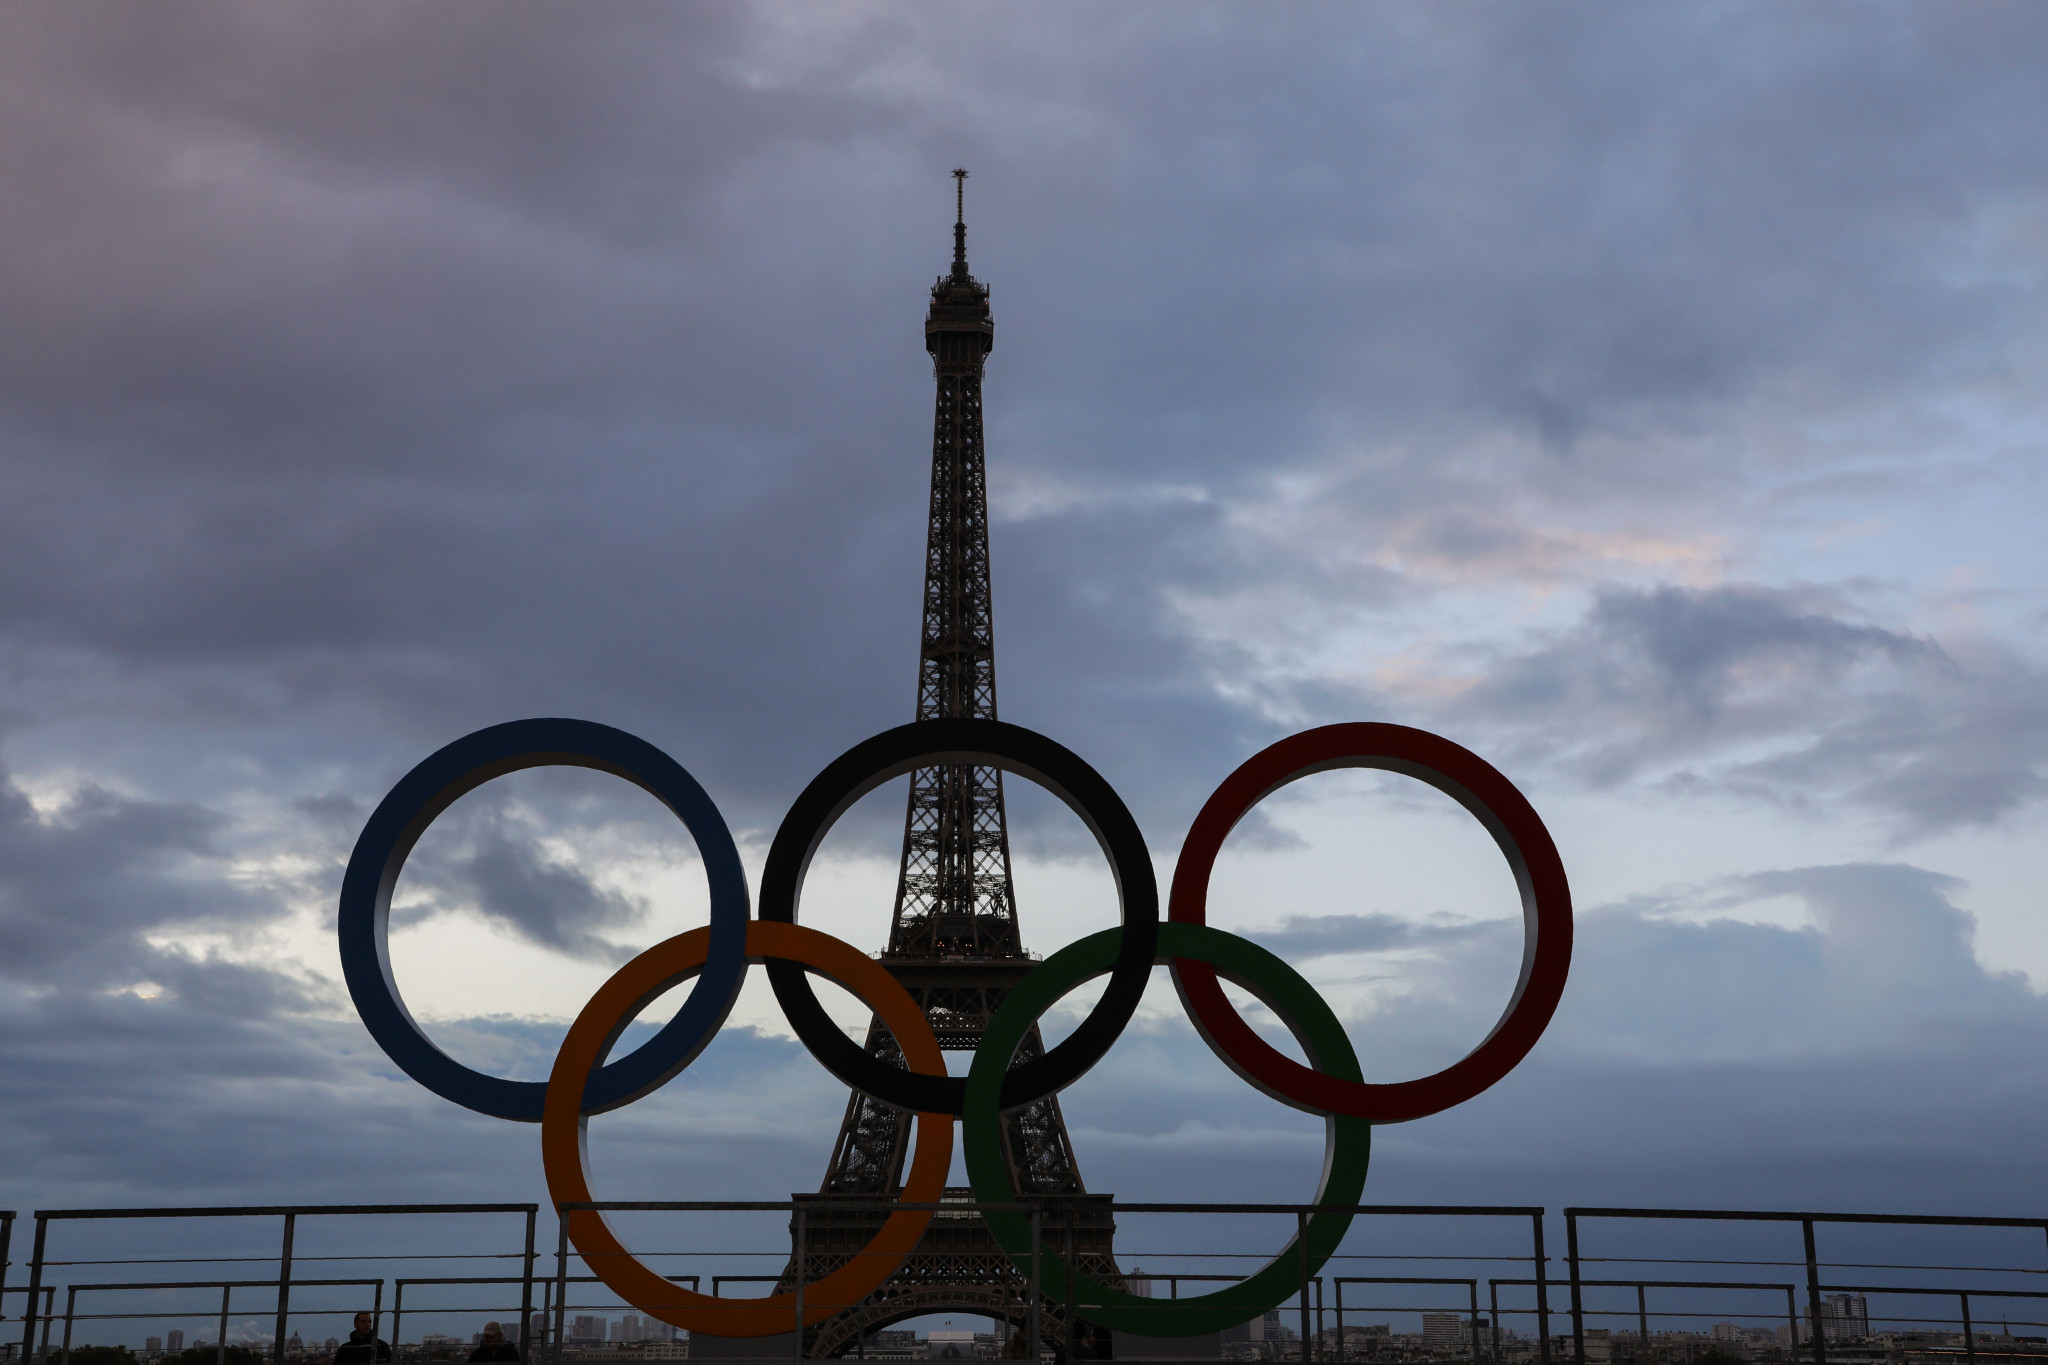 Inspectors pinpoint areas where Paris 2024 faces potential cost pressures